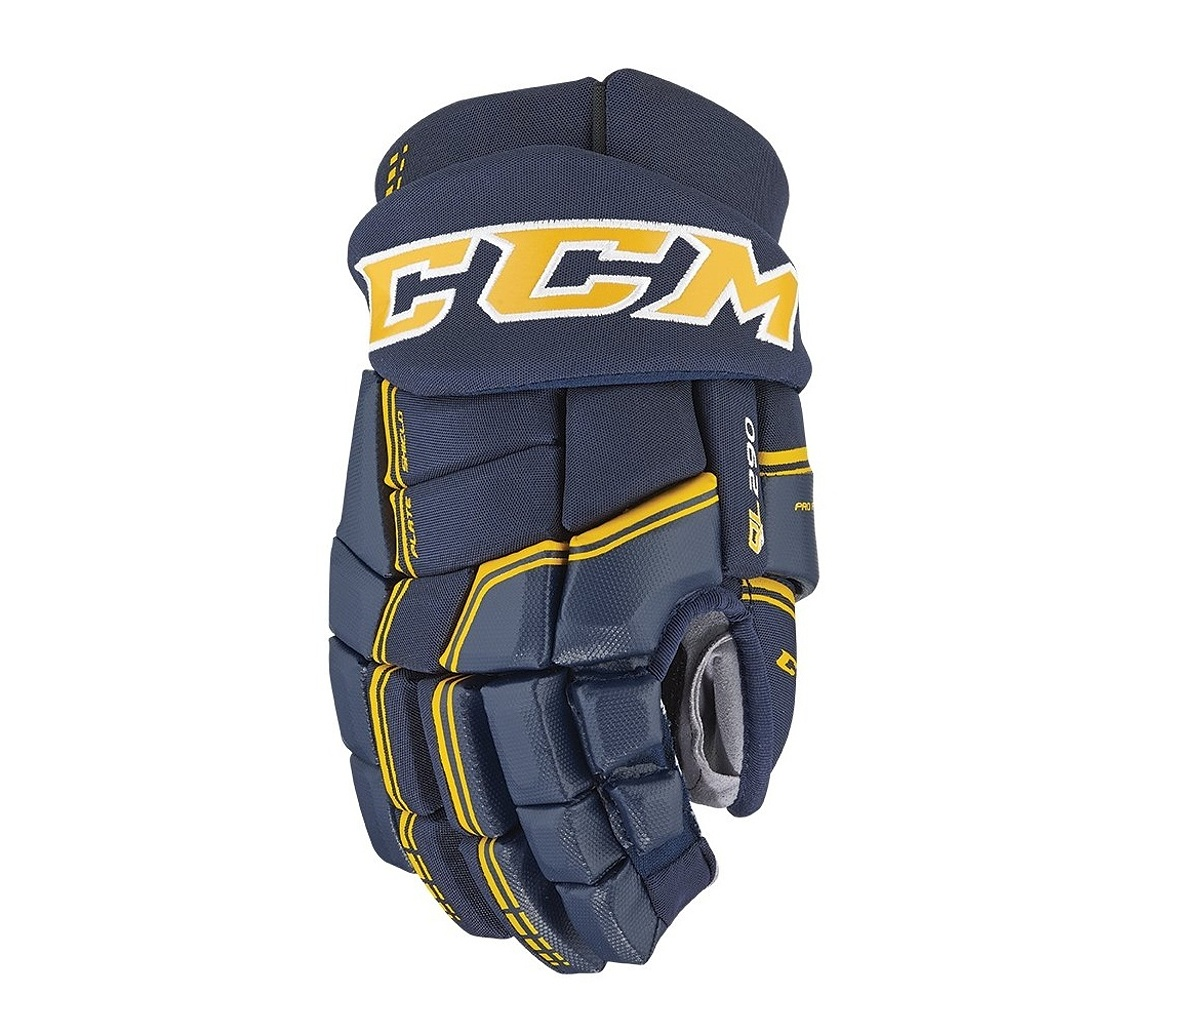 CCM rukavice QuickLite 290 SR